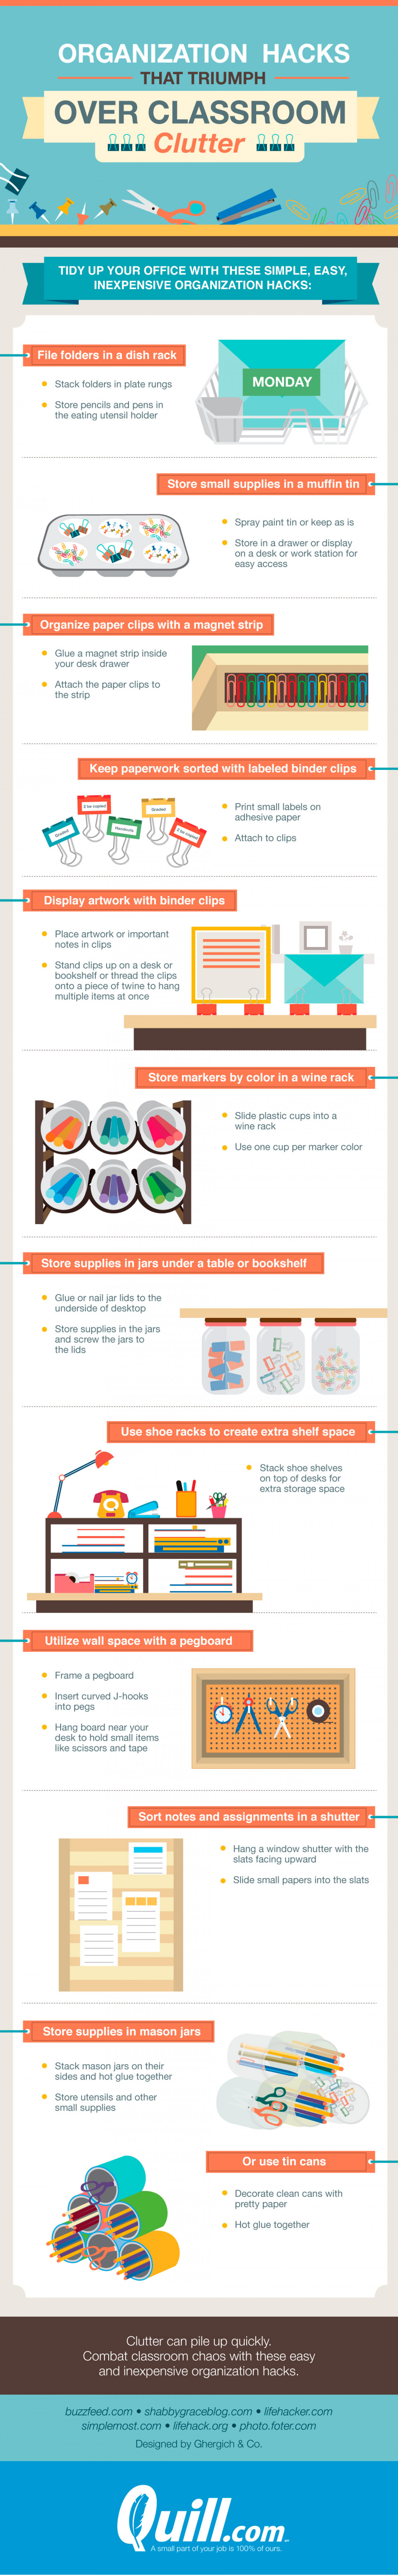 Organization Hacks That Triumph Over Classroom Clutter Infographic